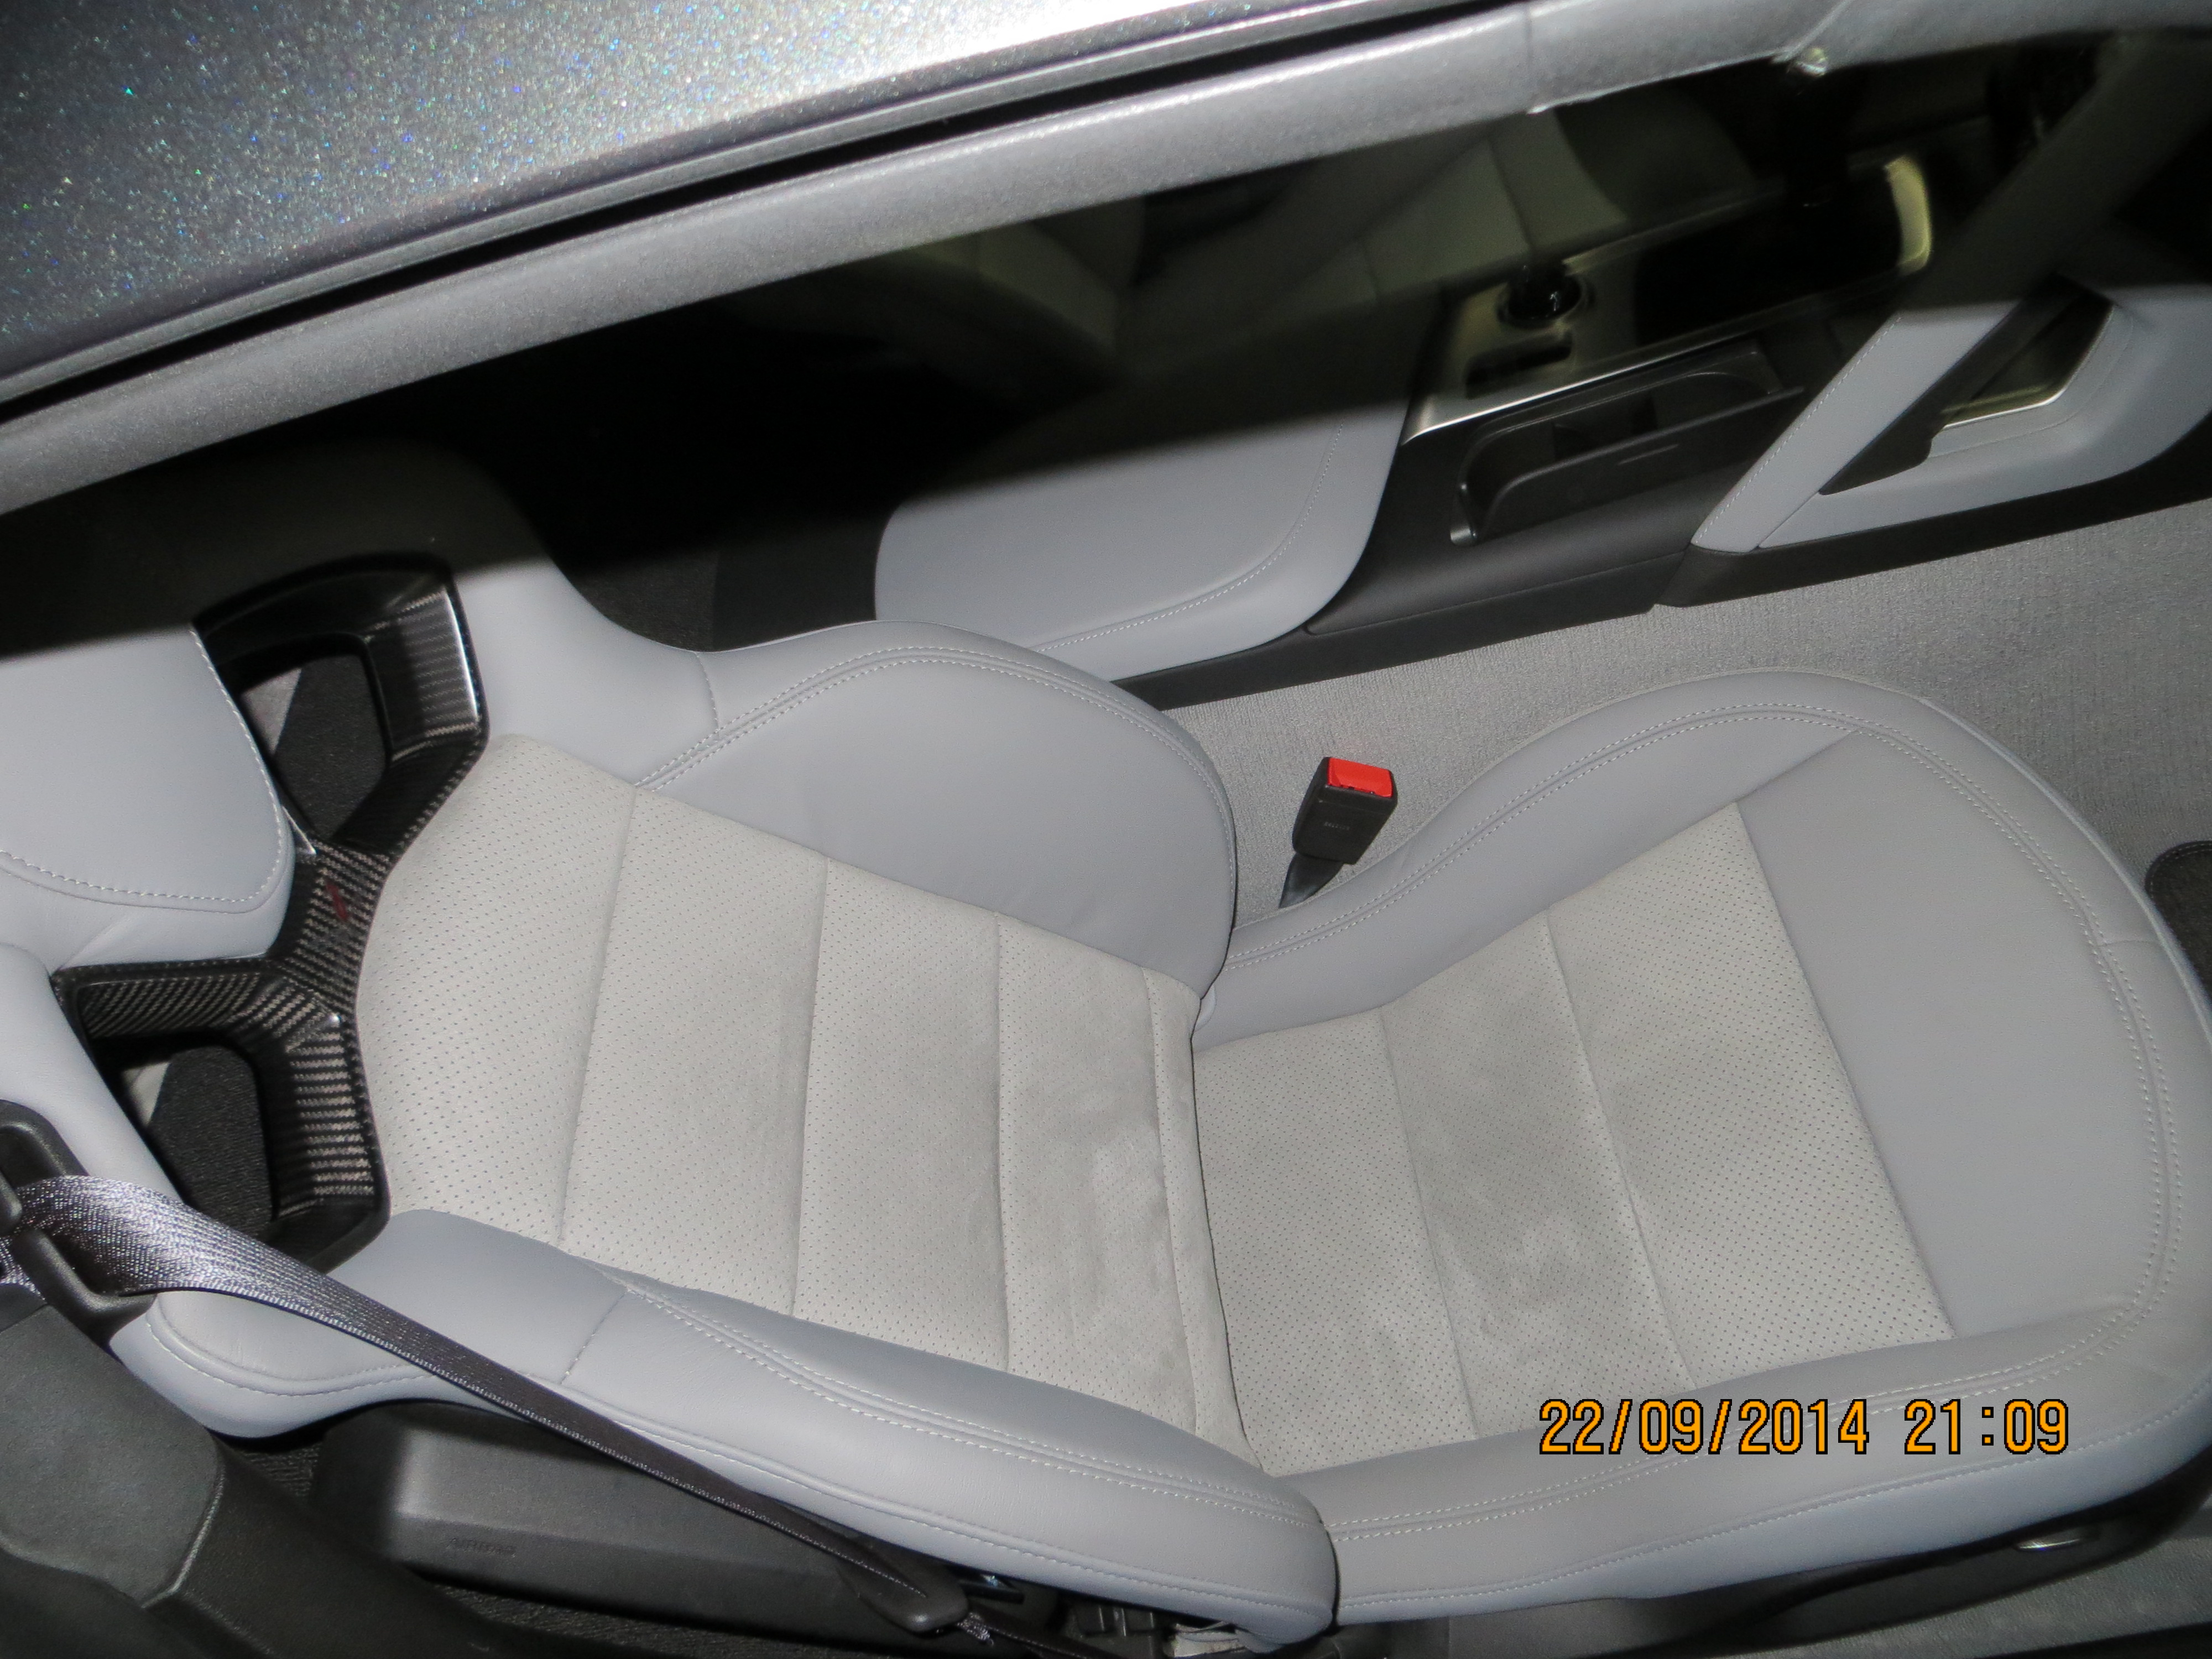 Comentry Floor Mats : Commentary sought from StingRay owners with grey interior